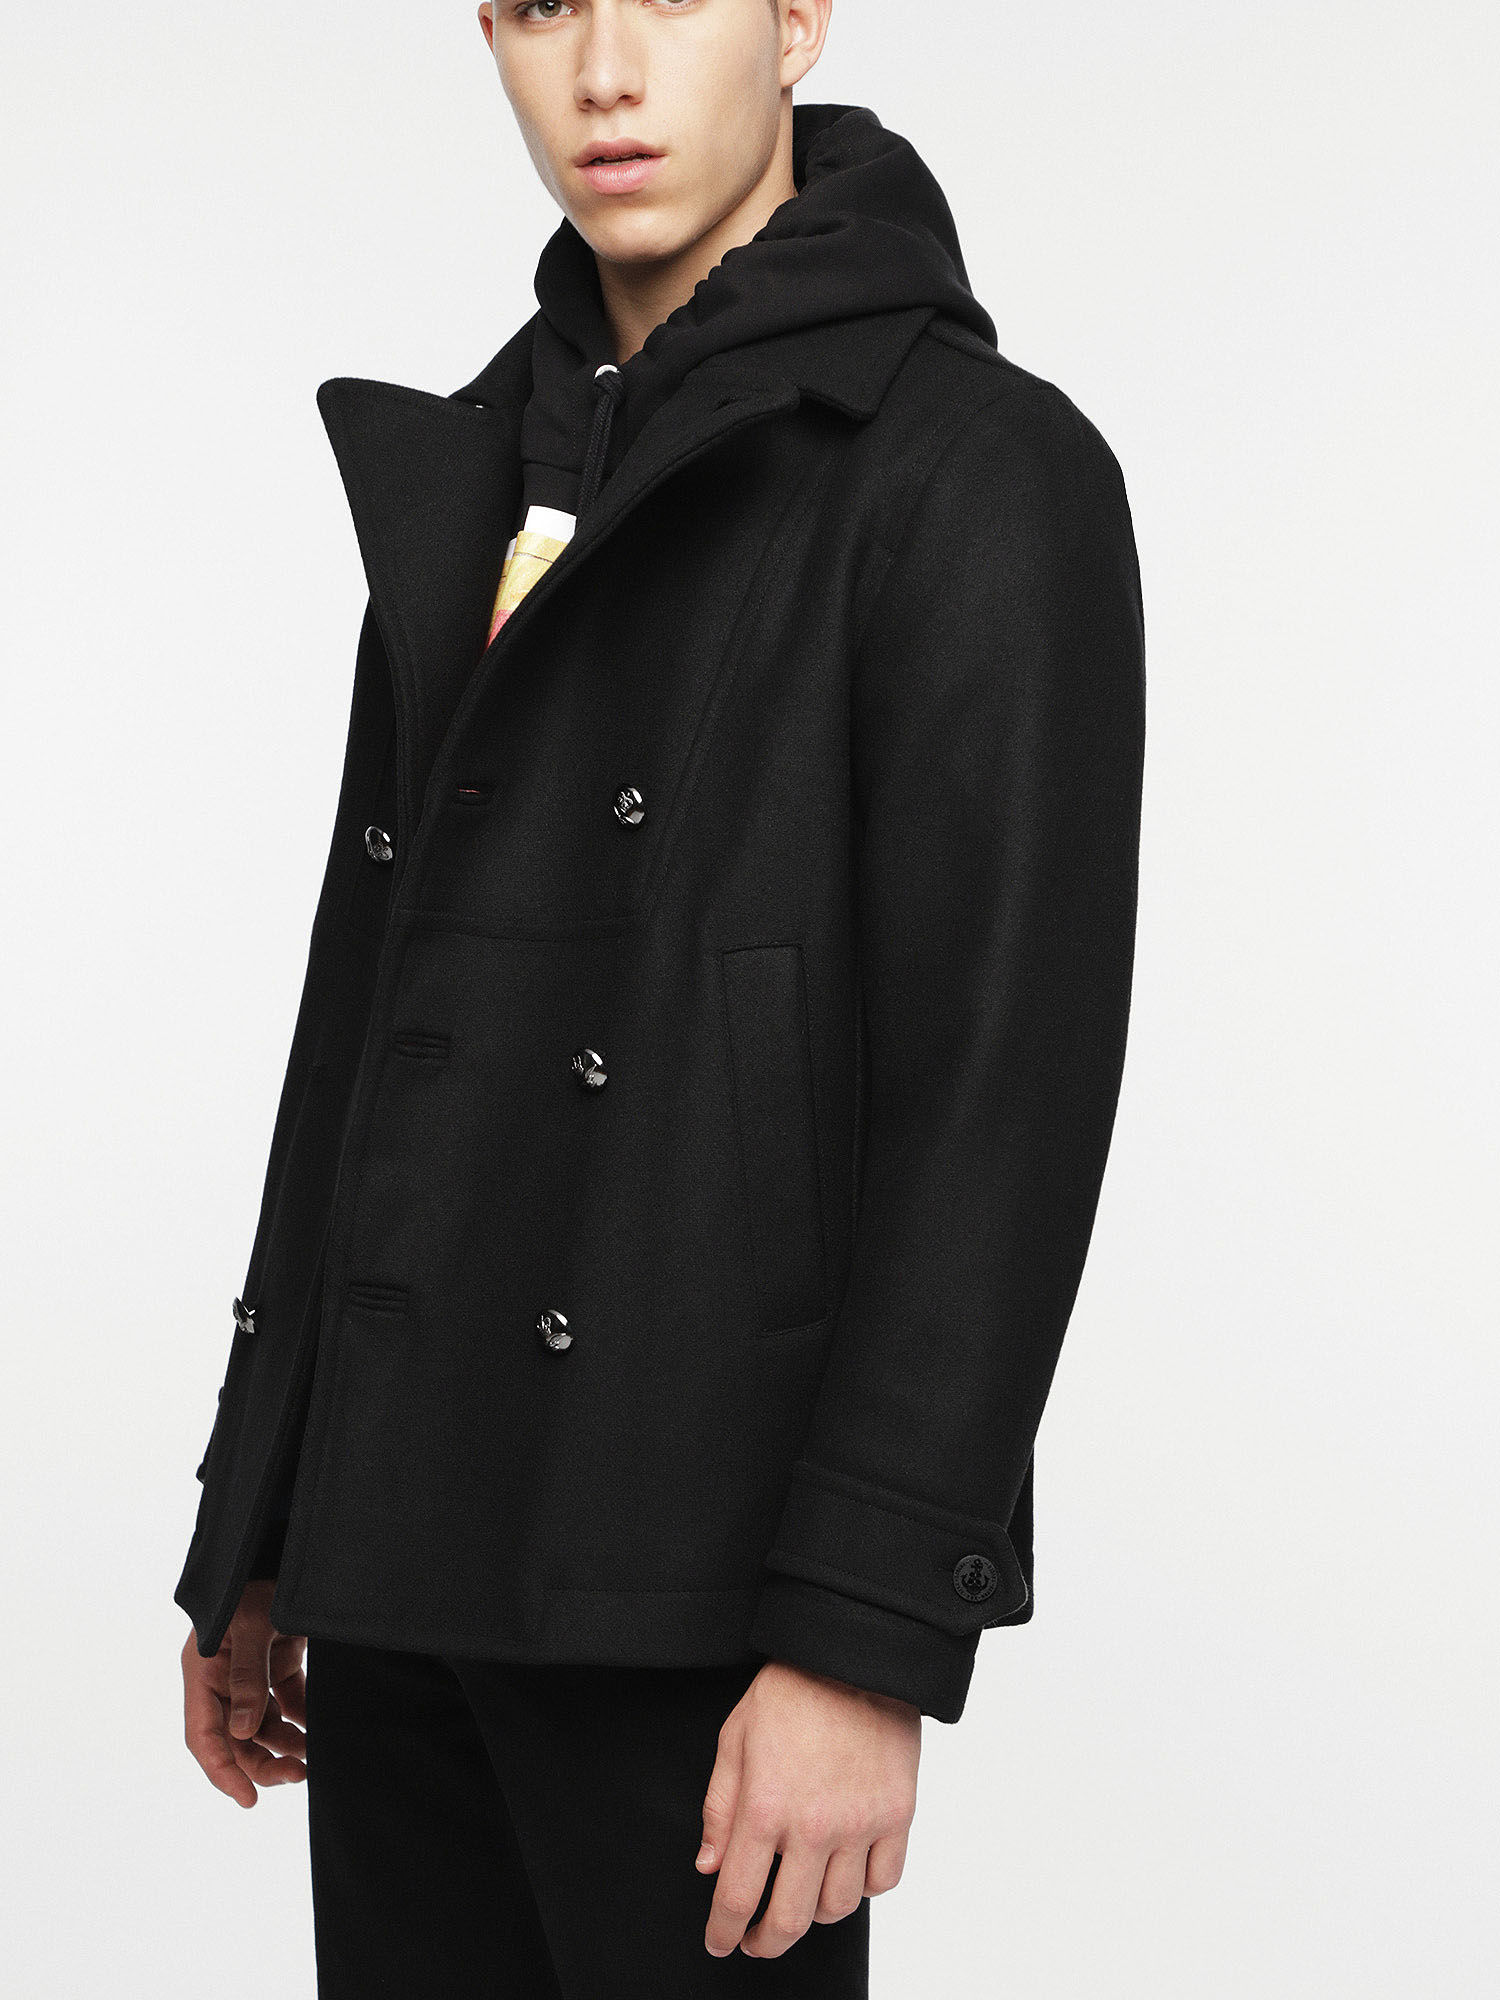 Winter jacket with teddy lining